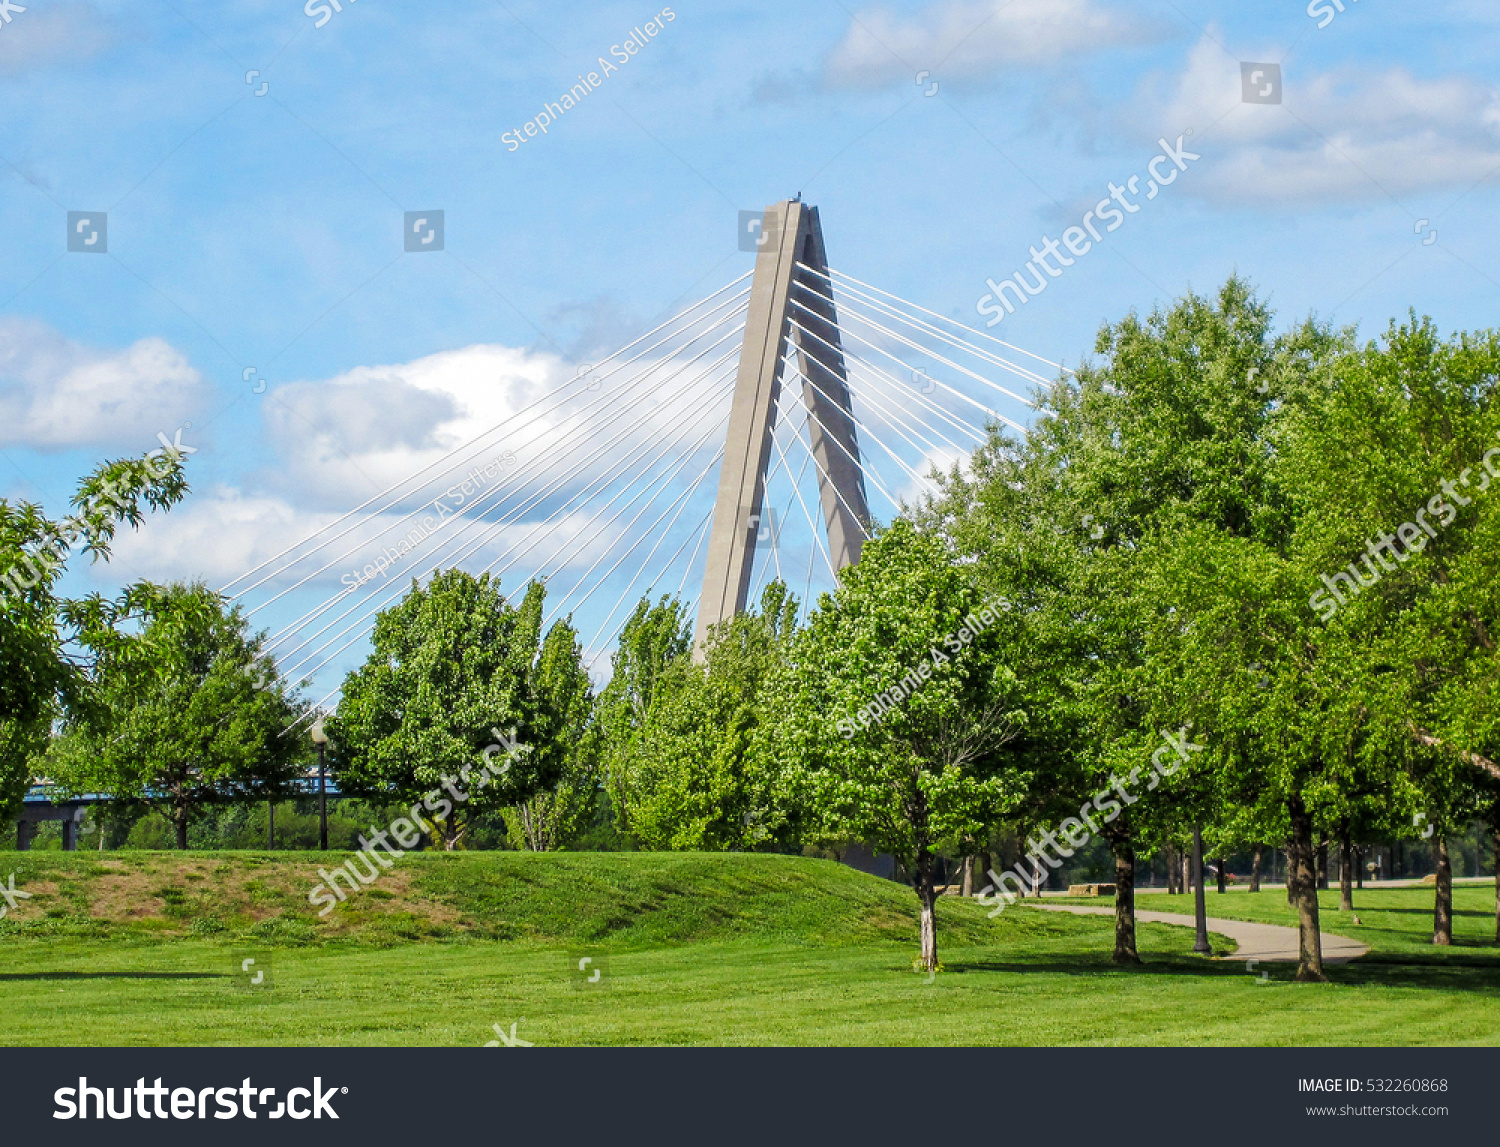 A view of the Christopher S Bond Bridge over the Missouri River hiding behind trees